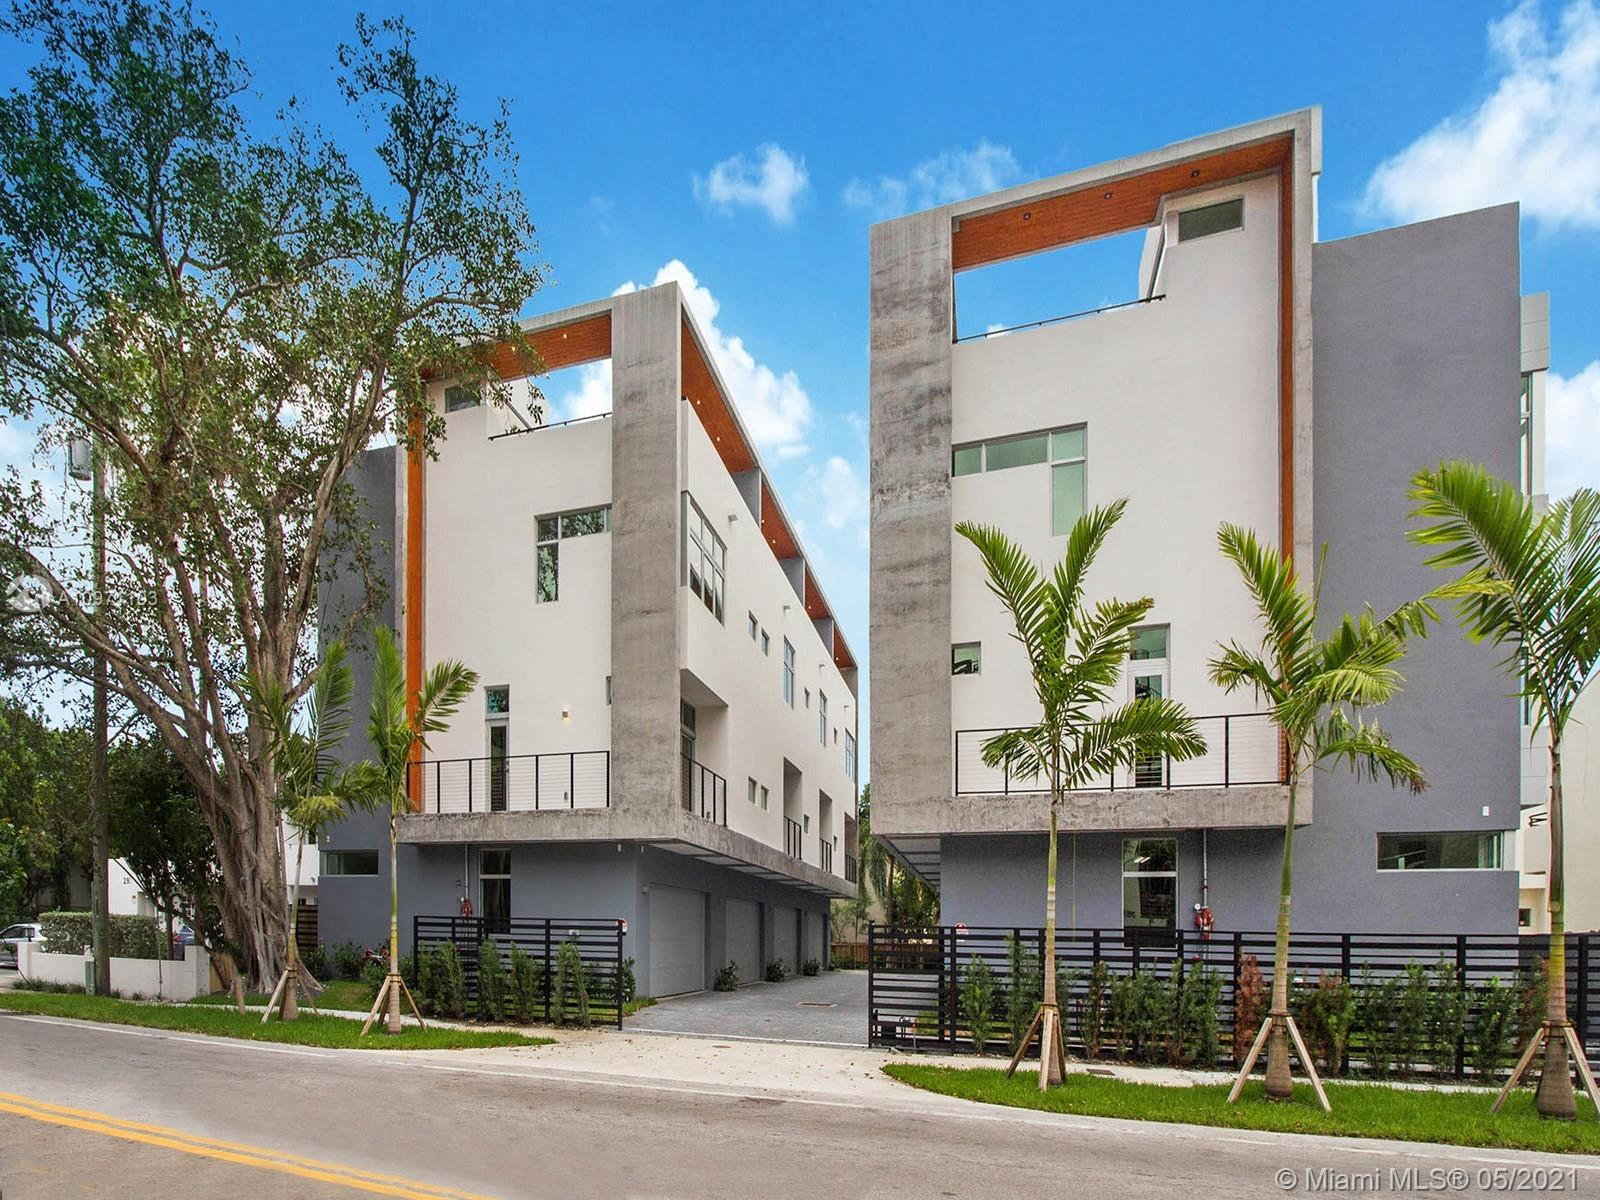 Brand new construction now ready for immediate occupancy in the heart of Coconut Grove. This 3-bedroom, 3 full bathroom townhome is complete with all impact glass and a 2-car garage. HABITAT AT THE GROVE is a brand-new boutique community with 8 hip urban townhouses. Two different floor plan options all with Bosch appliances and custom modern finishes. All impact glass windows and doors. Large private outdoor roof terrace with options for a summer kitchen and jacuzzi. Best walkability to newly redesigned CocoWalk, cafes, restaurants, offices, and parks in Coconut Grove. Centrally located to Miami International Airport, Coral Gables and Downtown Miami. A must consider if you are looking for move in ready in adored 33133.